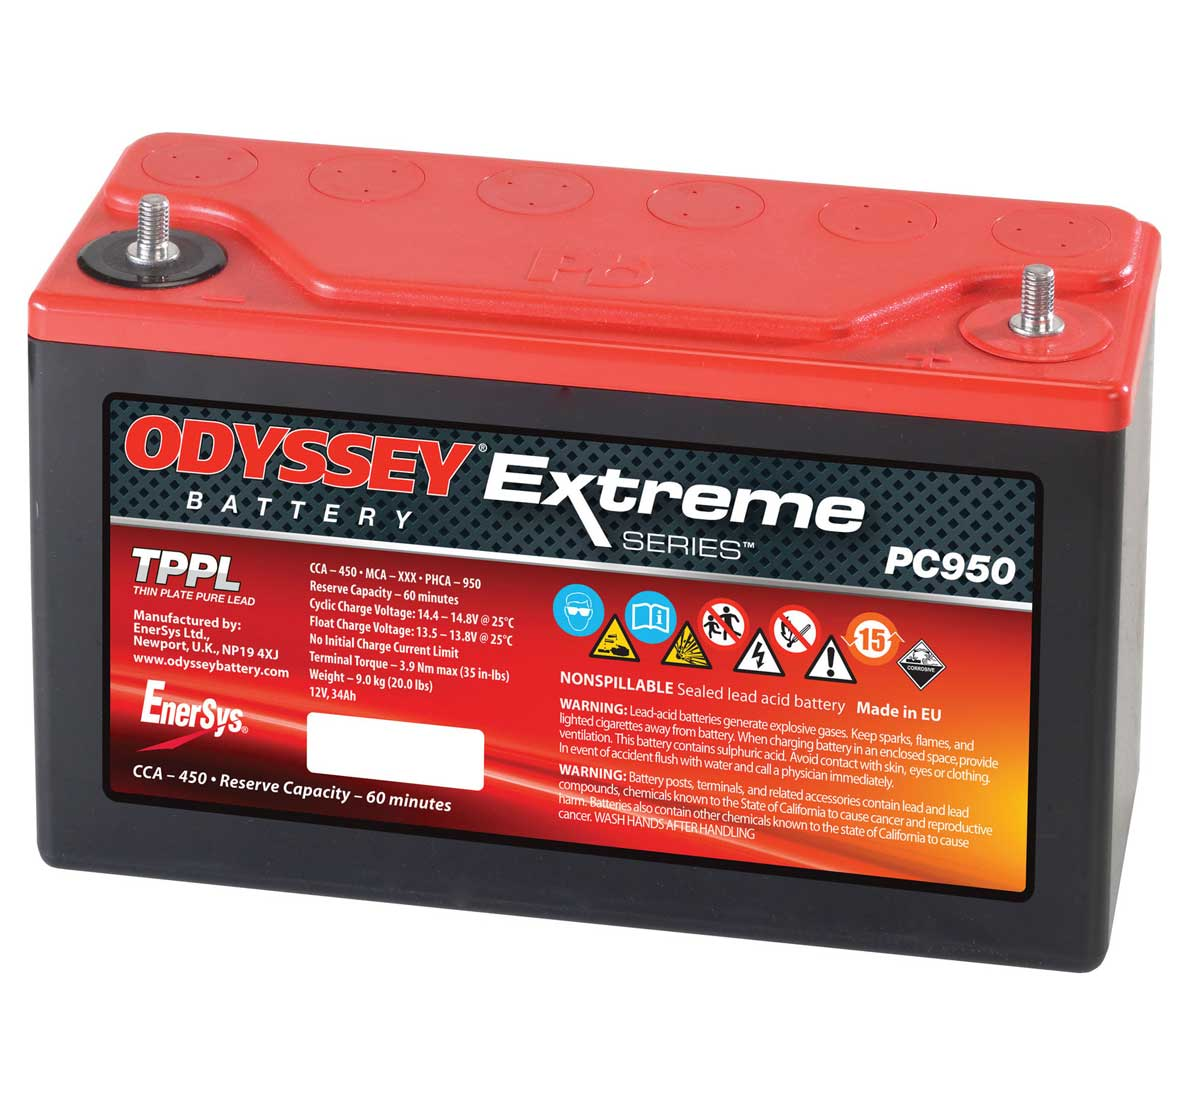 Odyssey PC950 Extreme Racing 30 Starter Battery